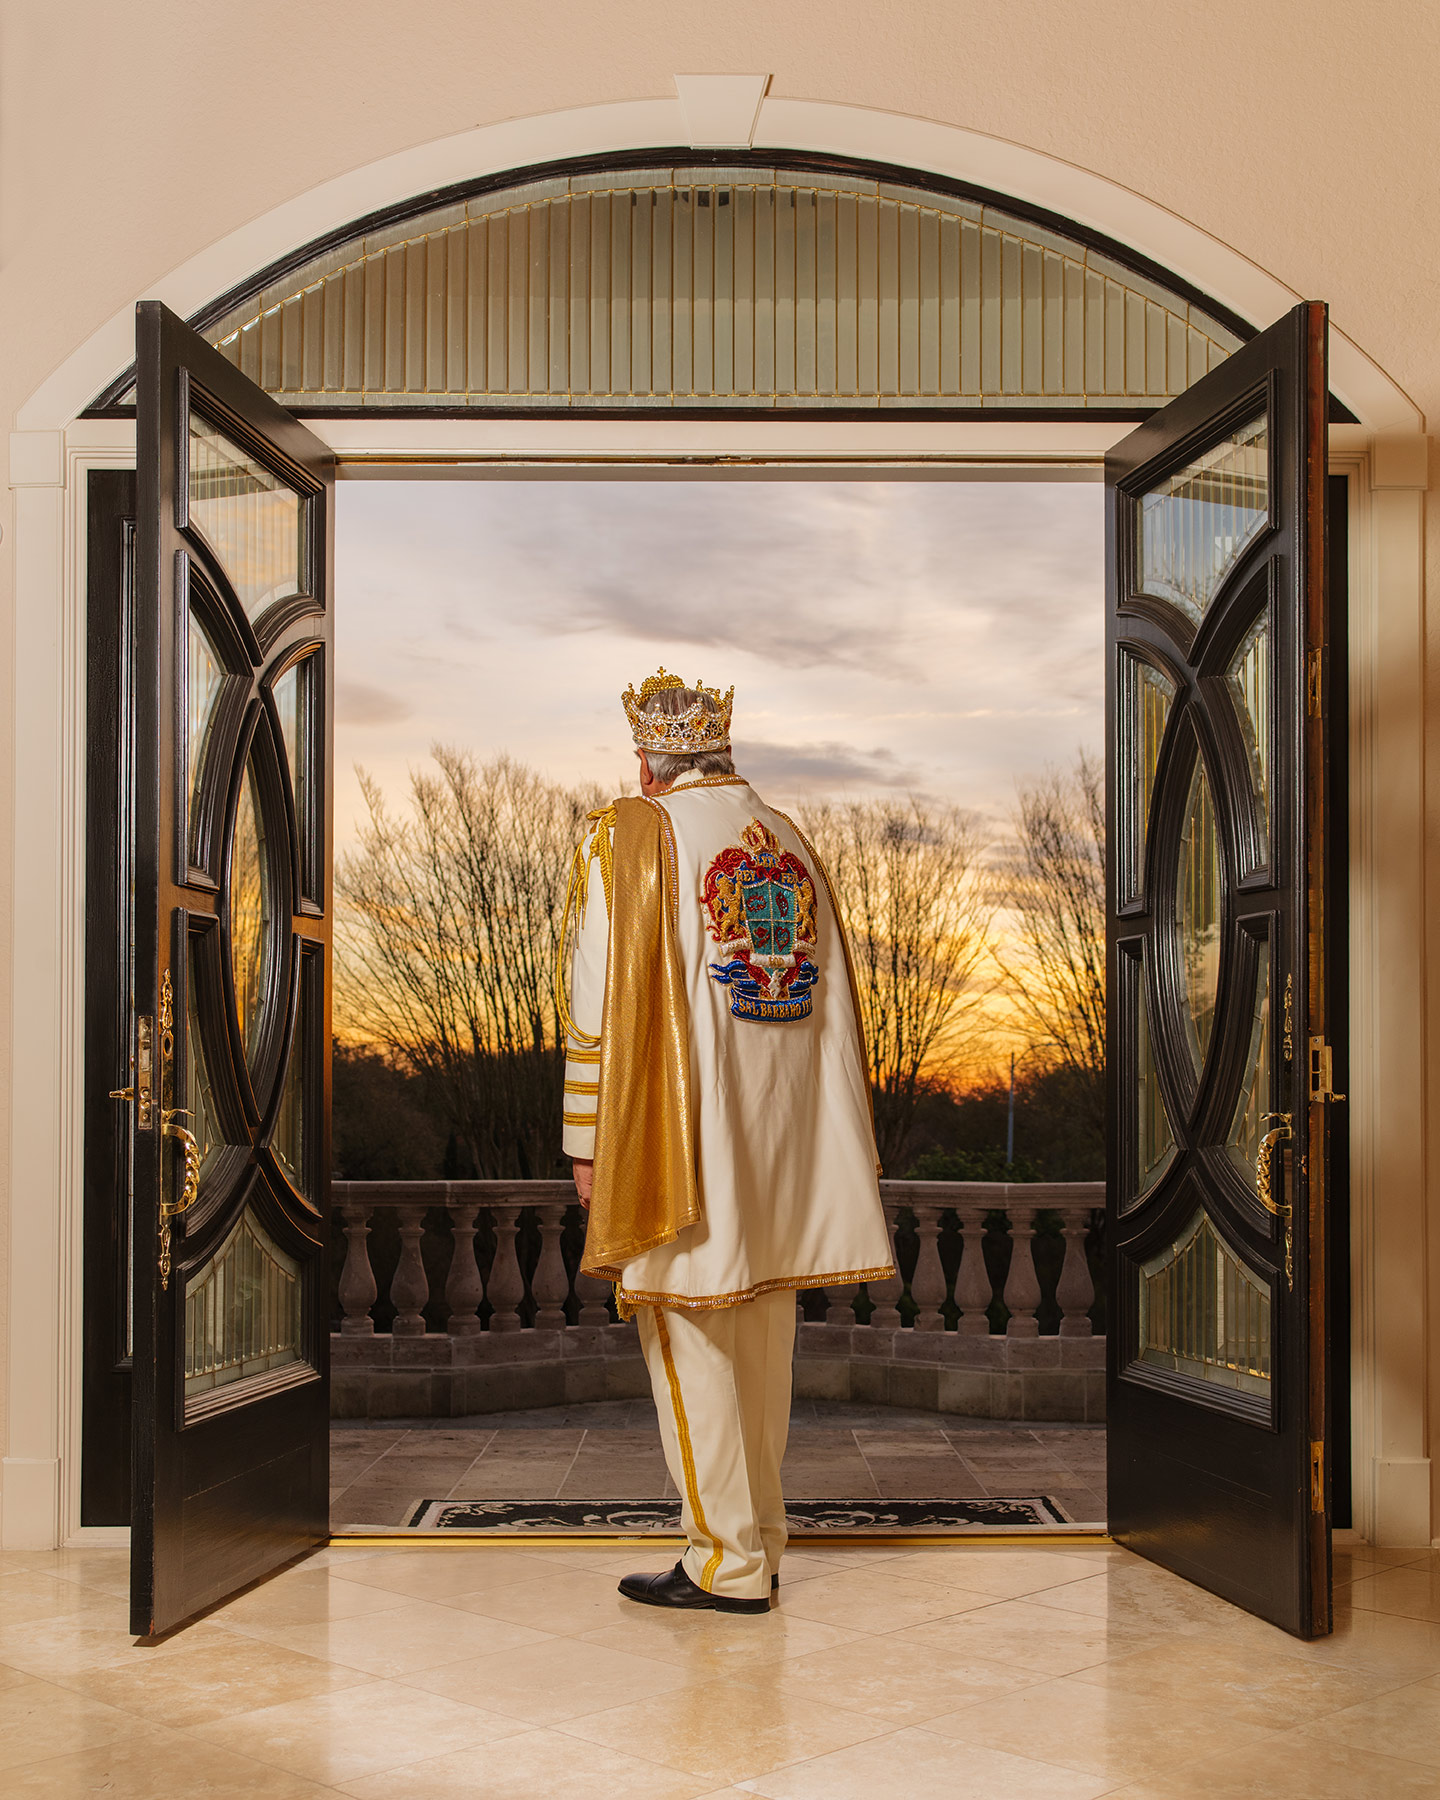 El Rey Feo, Dr. Sal Barbaro, photographed in San Antonio, TX at his home at sunrise.